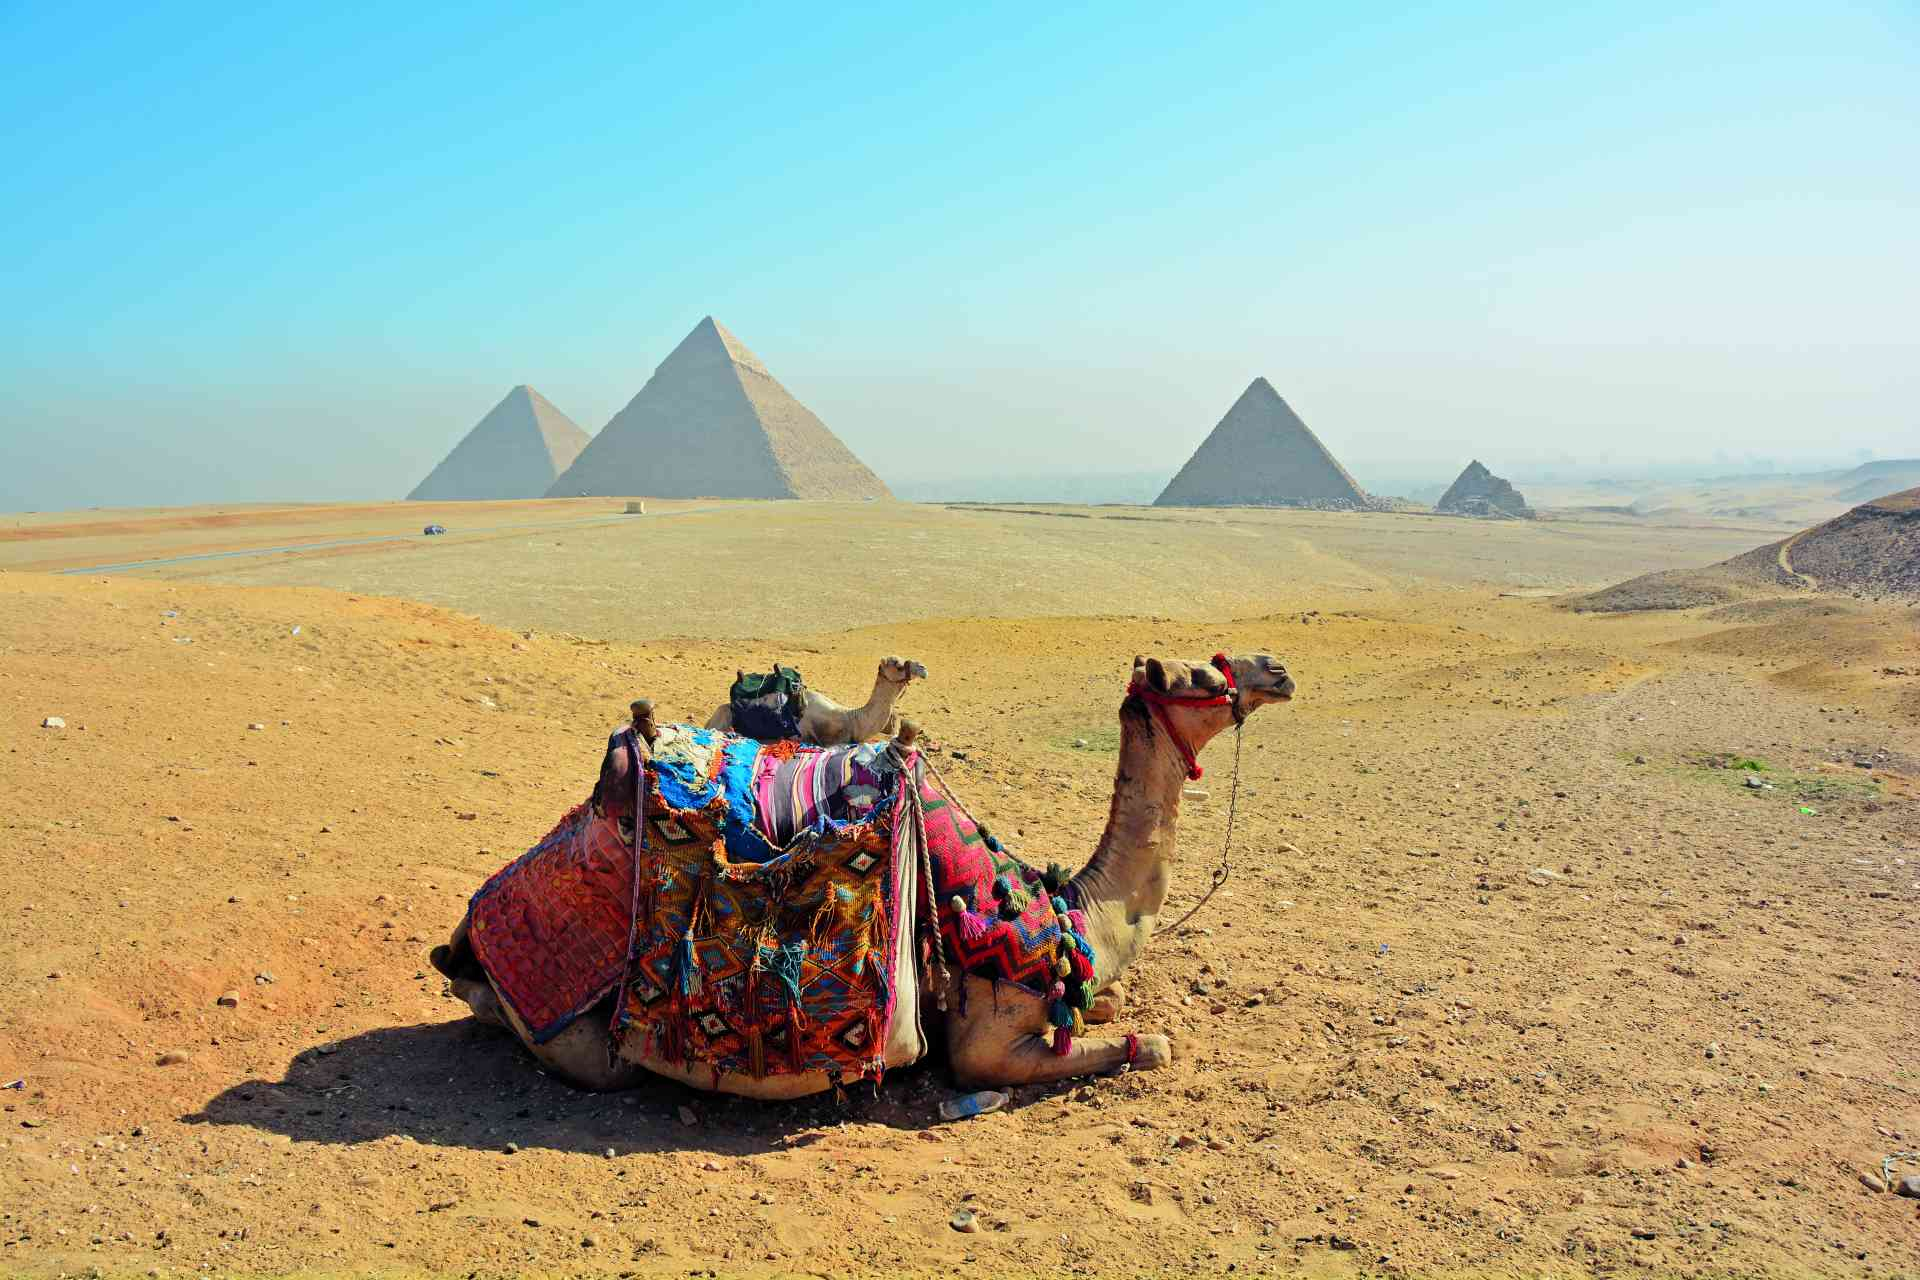 Camels in Cairo